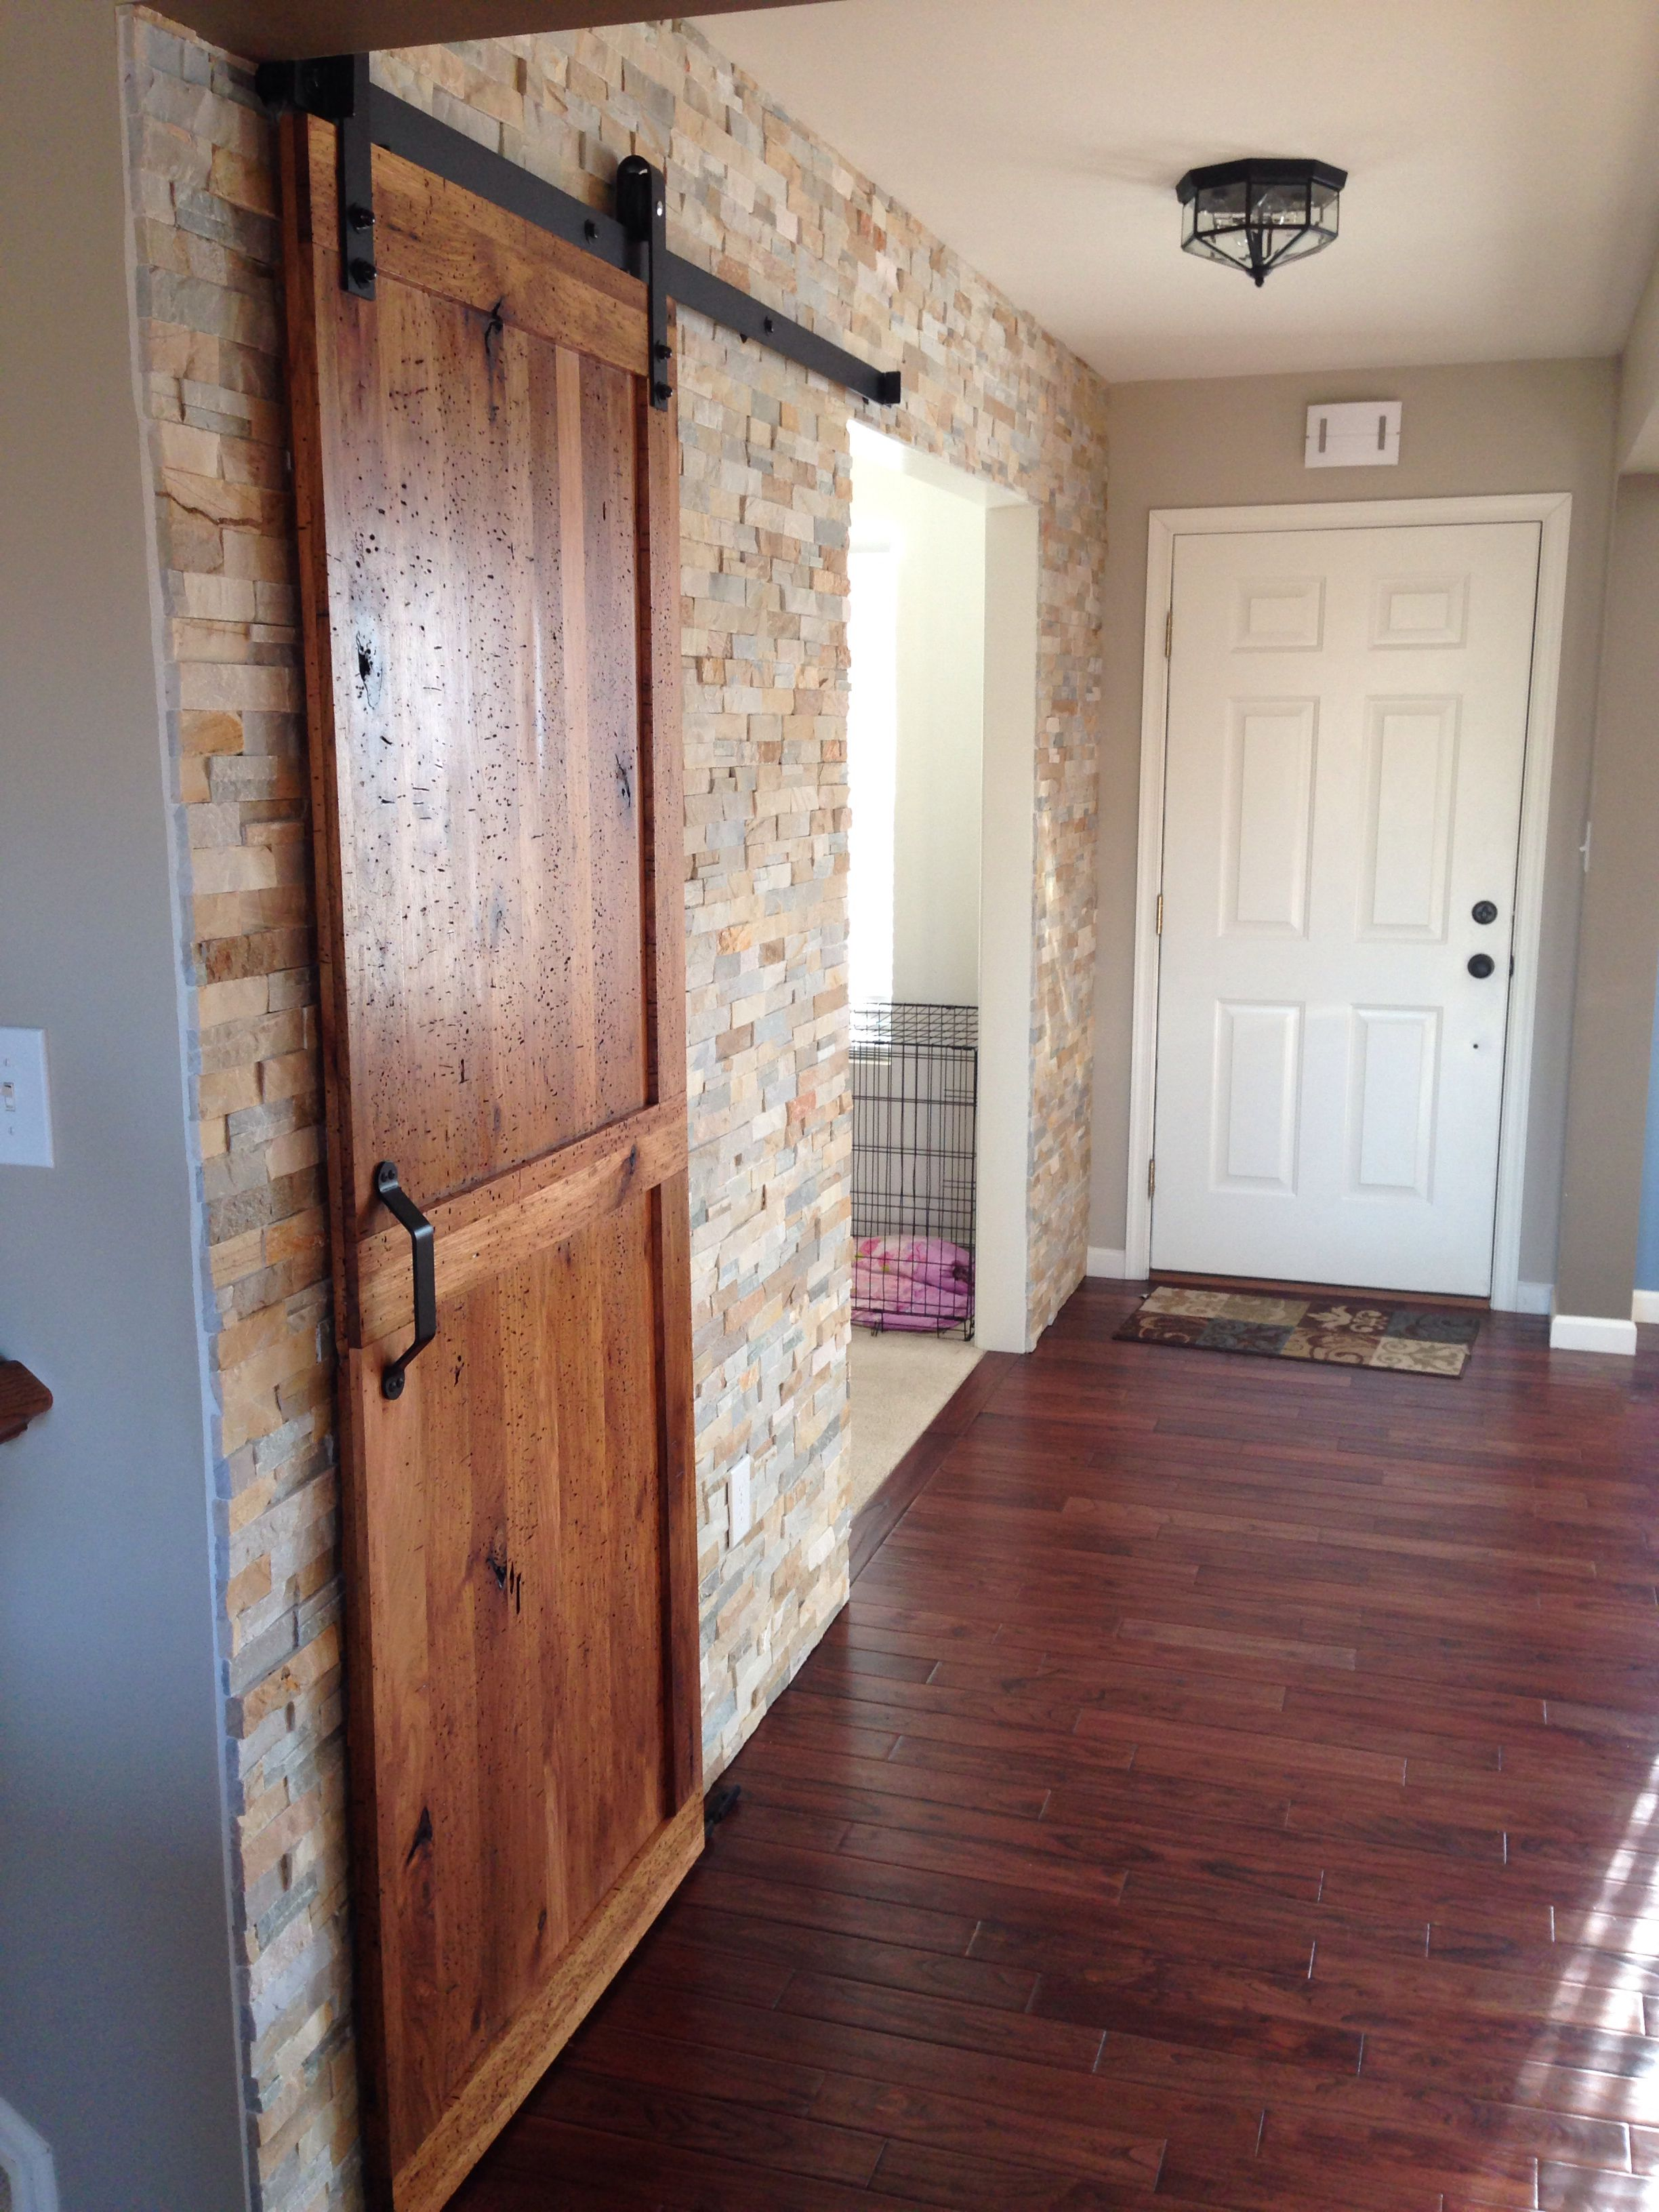 Barn Doors For Homes New Stone Wall And Barn Door Home Decor In 2019 Modern Rustic